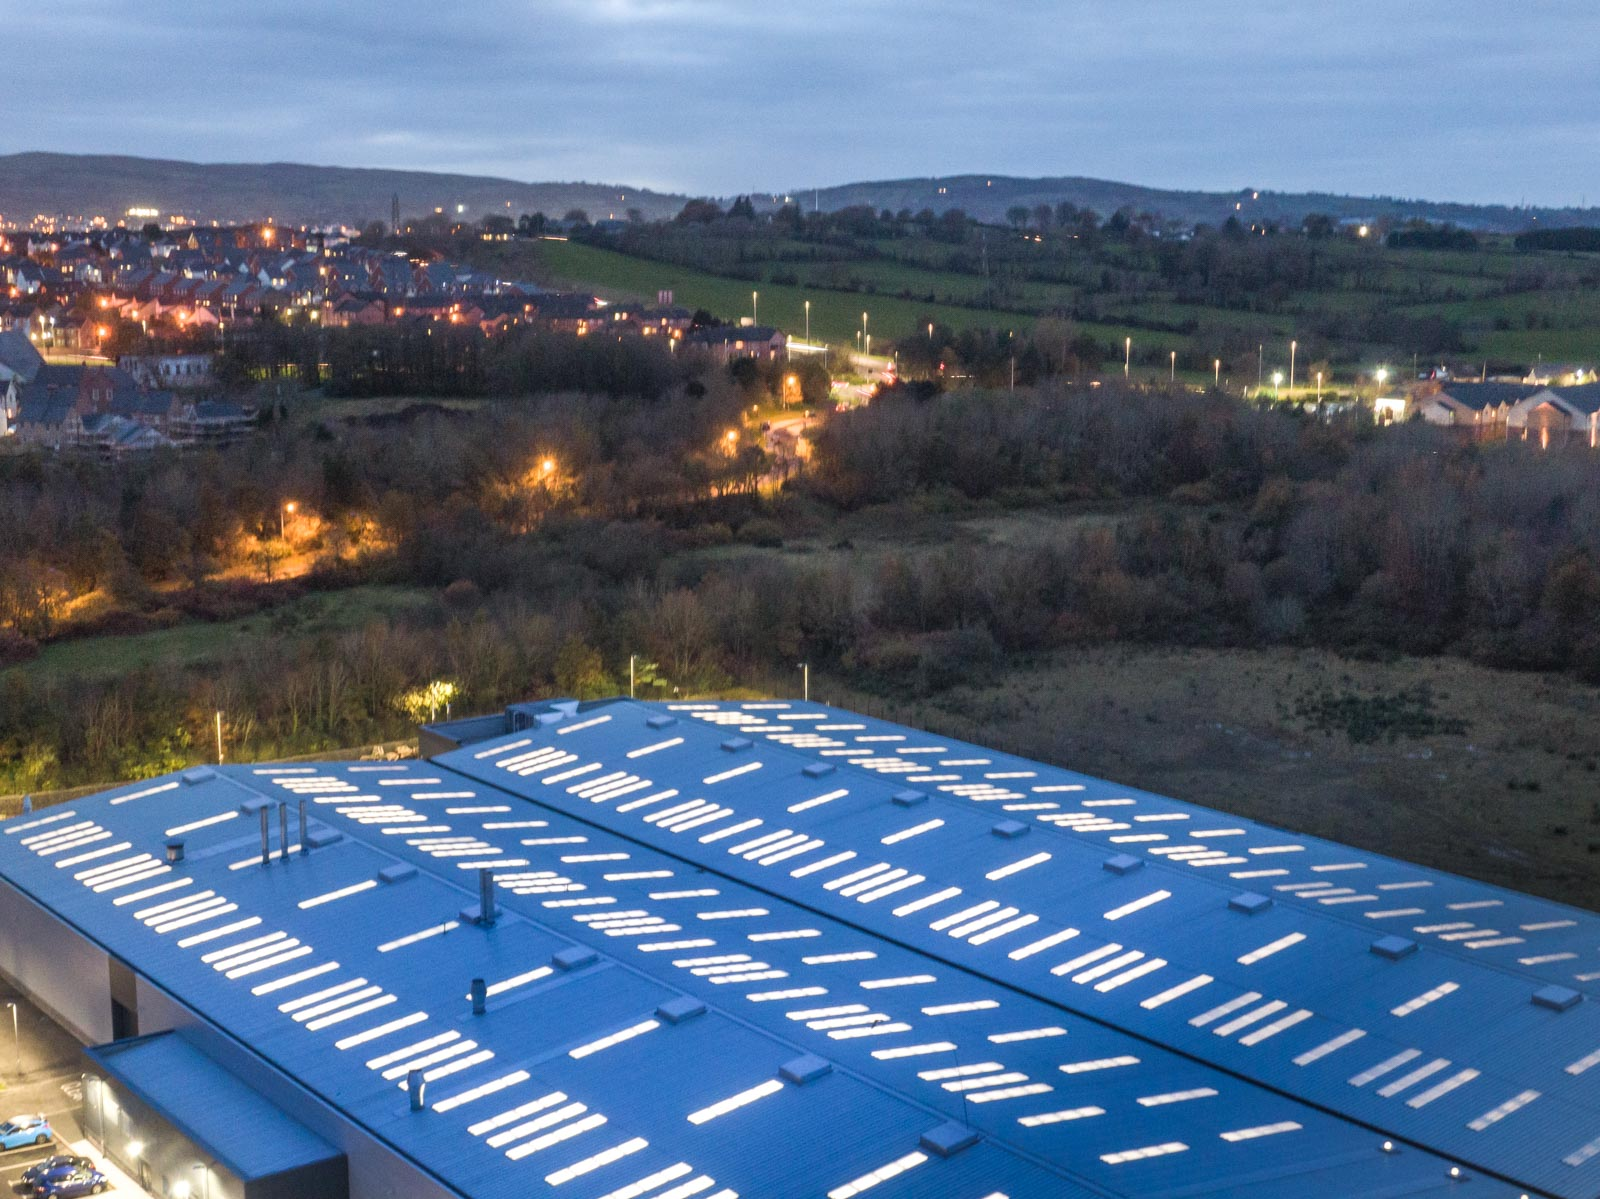 Aerial drone photography and video production services Dublin and Ireland portfolio - section 0003 of photo 0001-2 of RLC building, N. Ireland